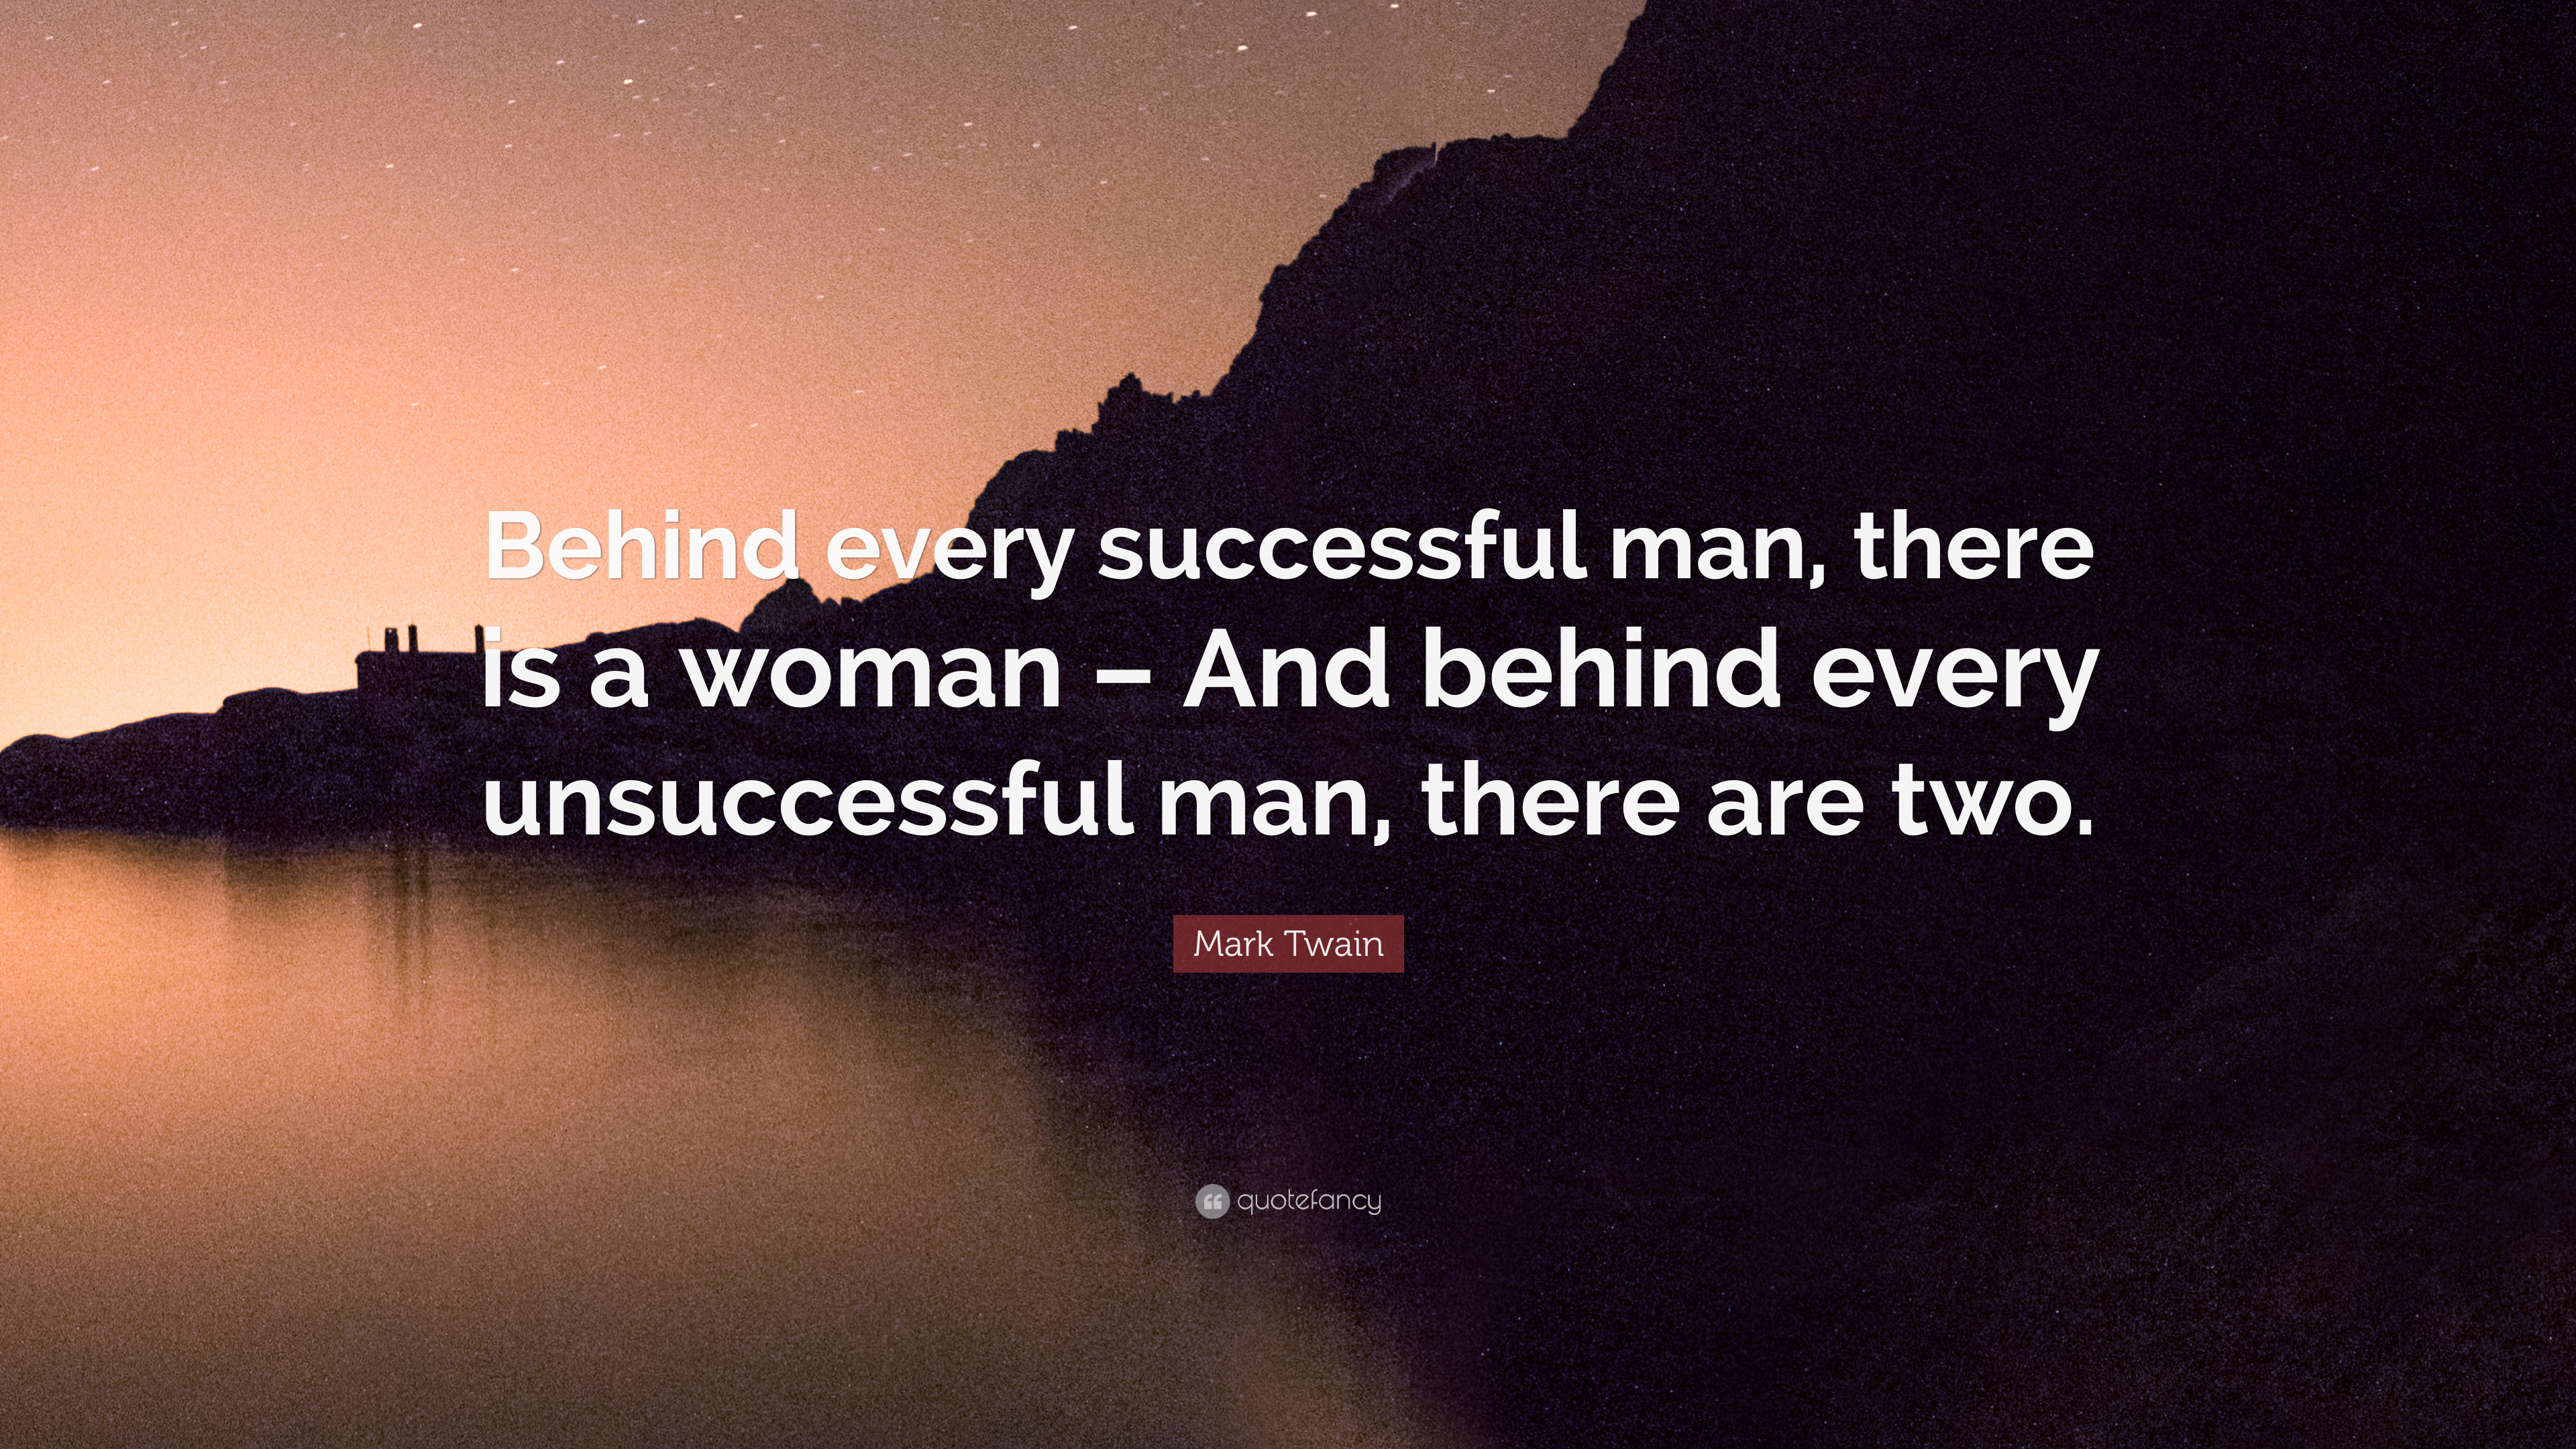 Mark Twain Quote Behind Every Successful Man There Is A Woman